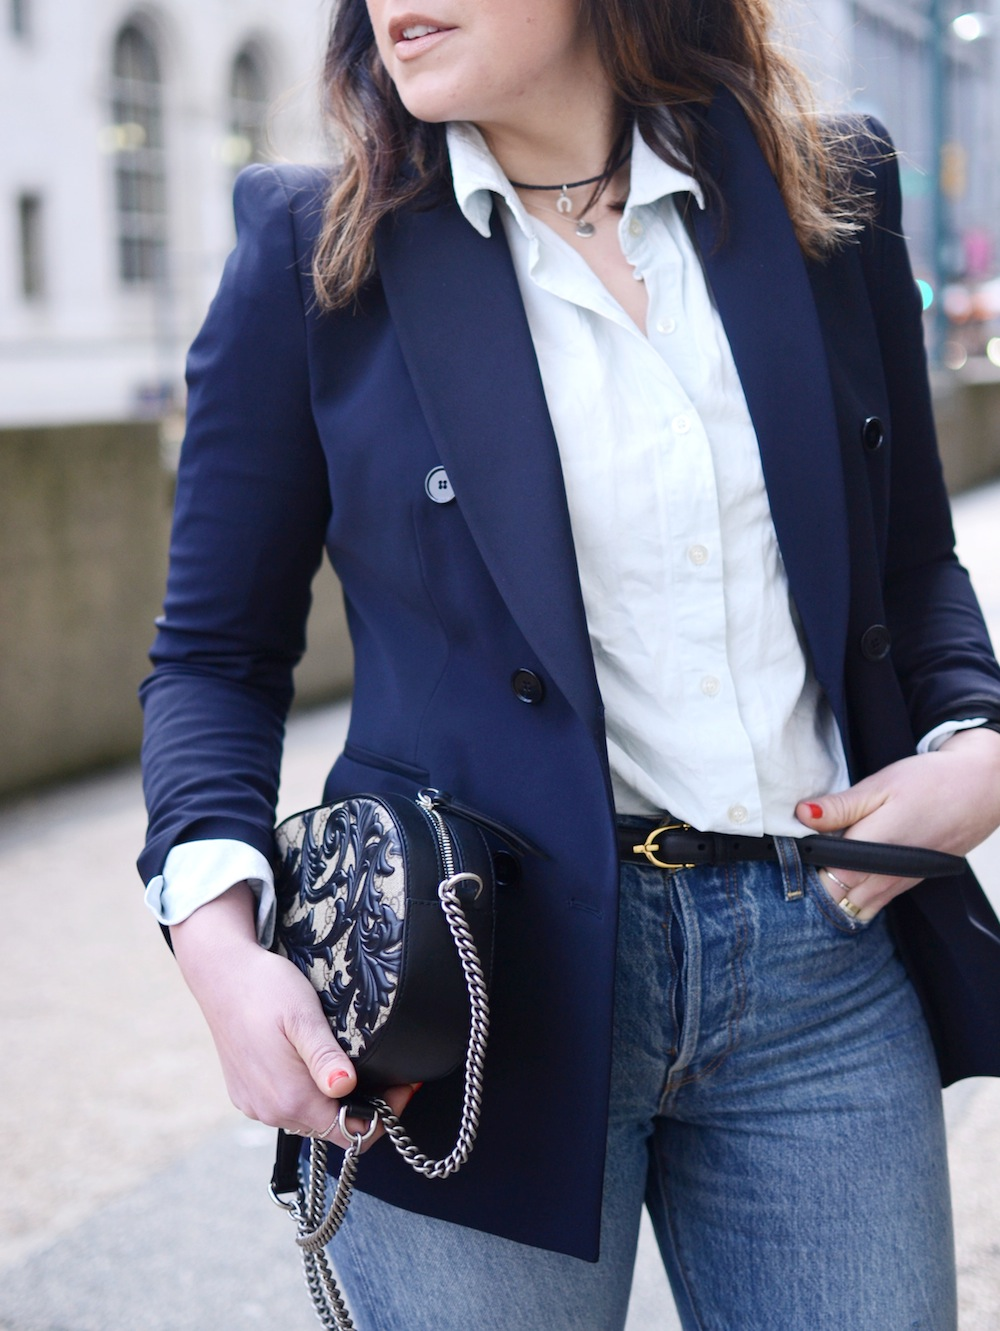 blazer outfit levis wedgie jeans spring outfit idea Vancouver fashion blogger